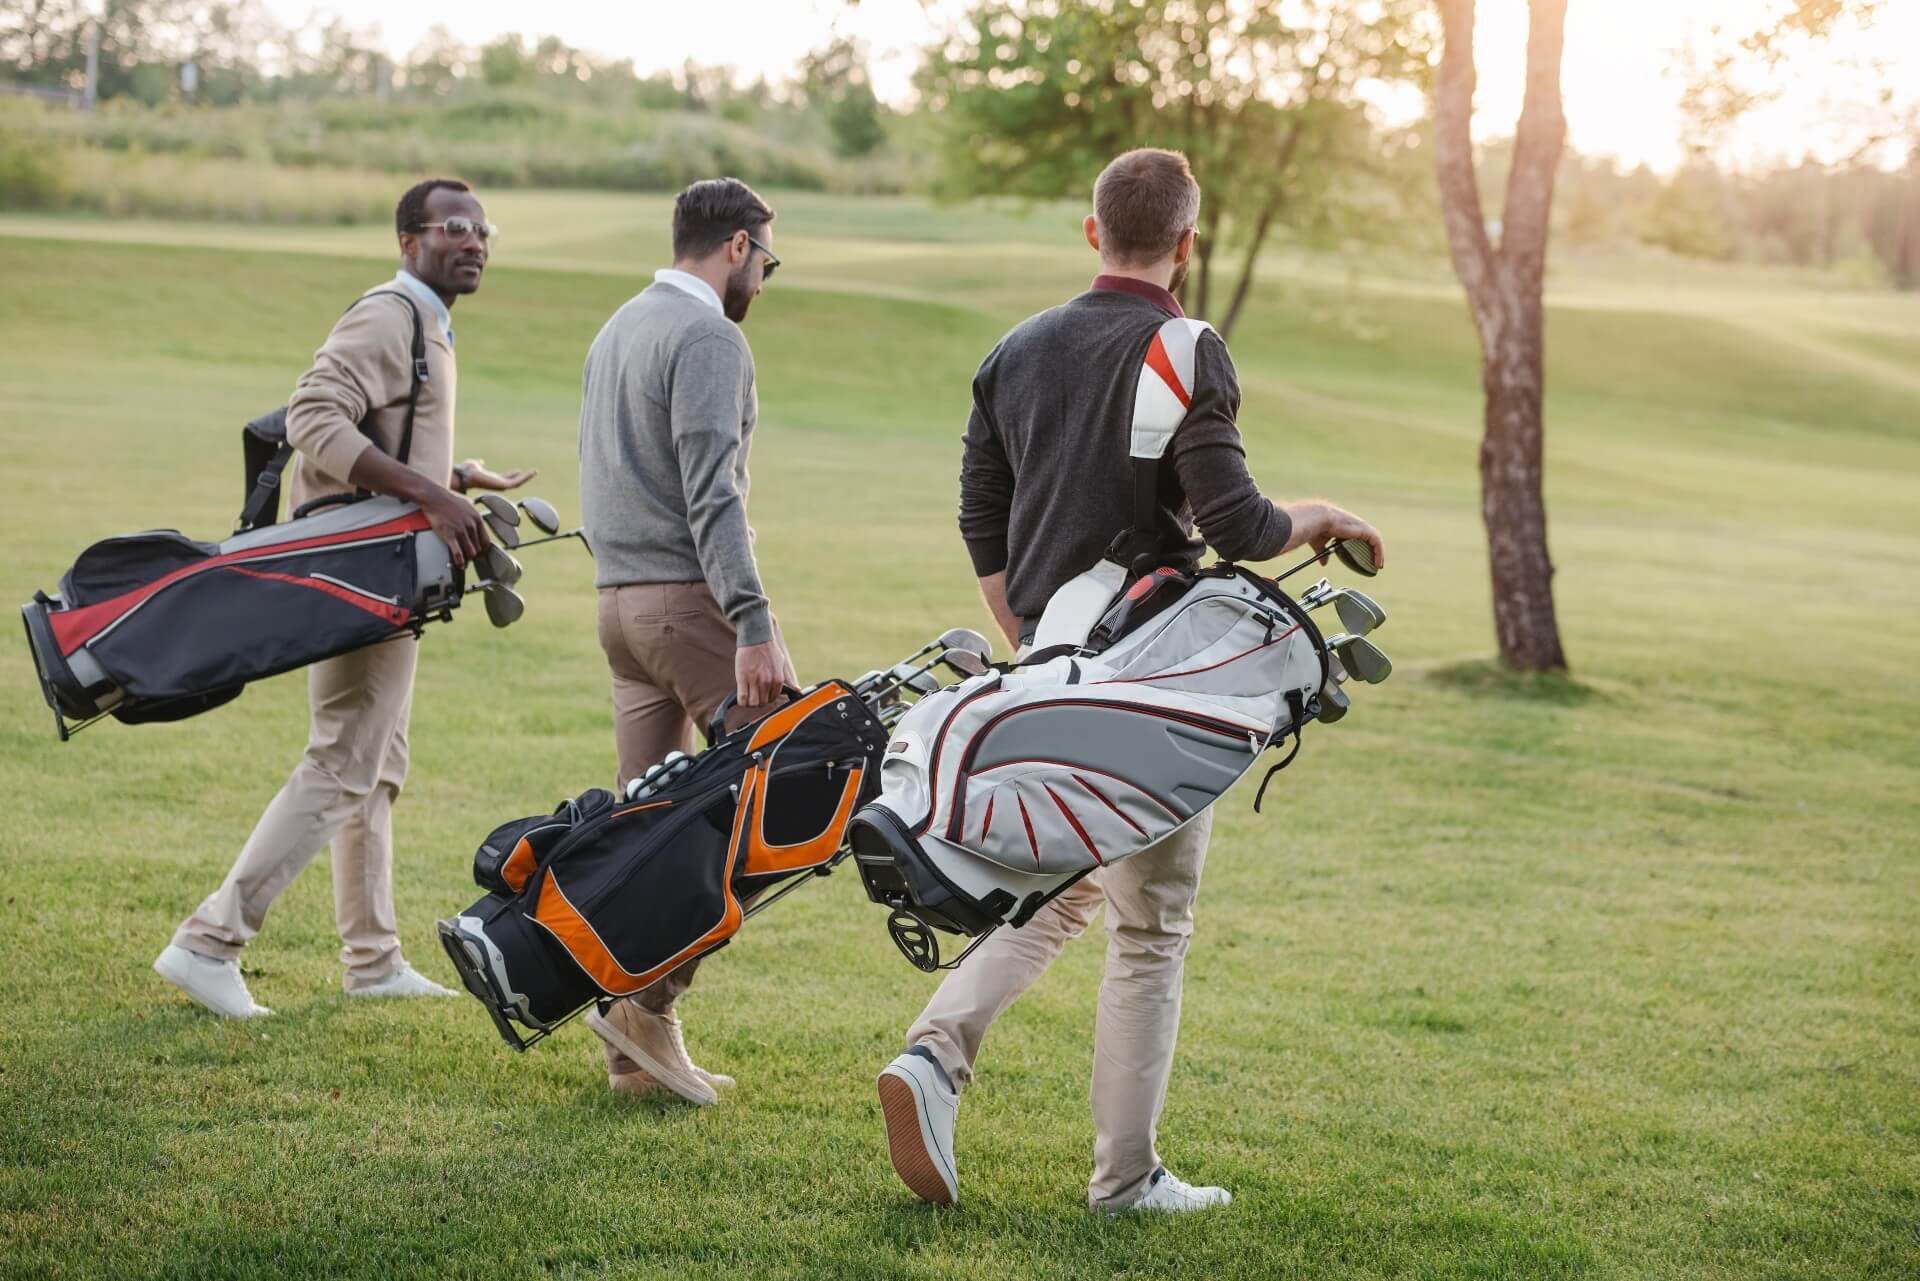 Three golf players walking with their golf tour bags on a golf course